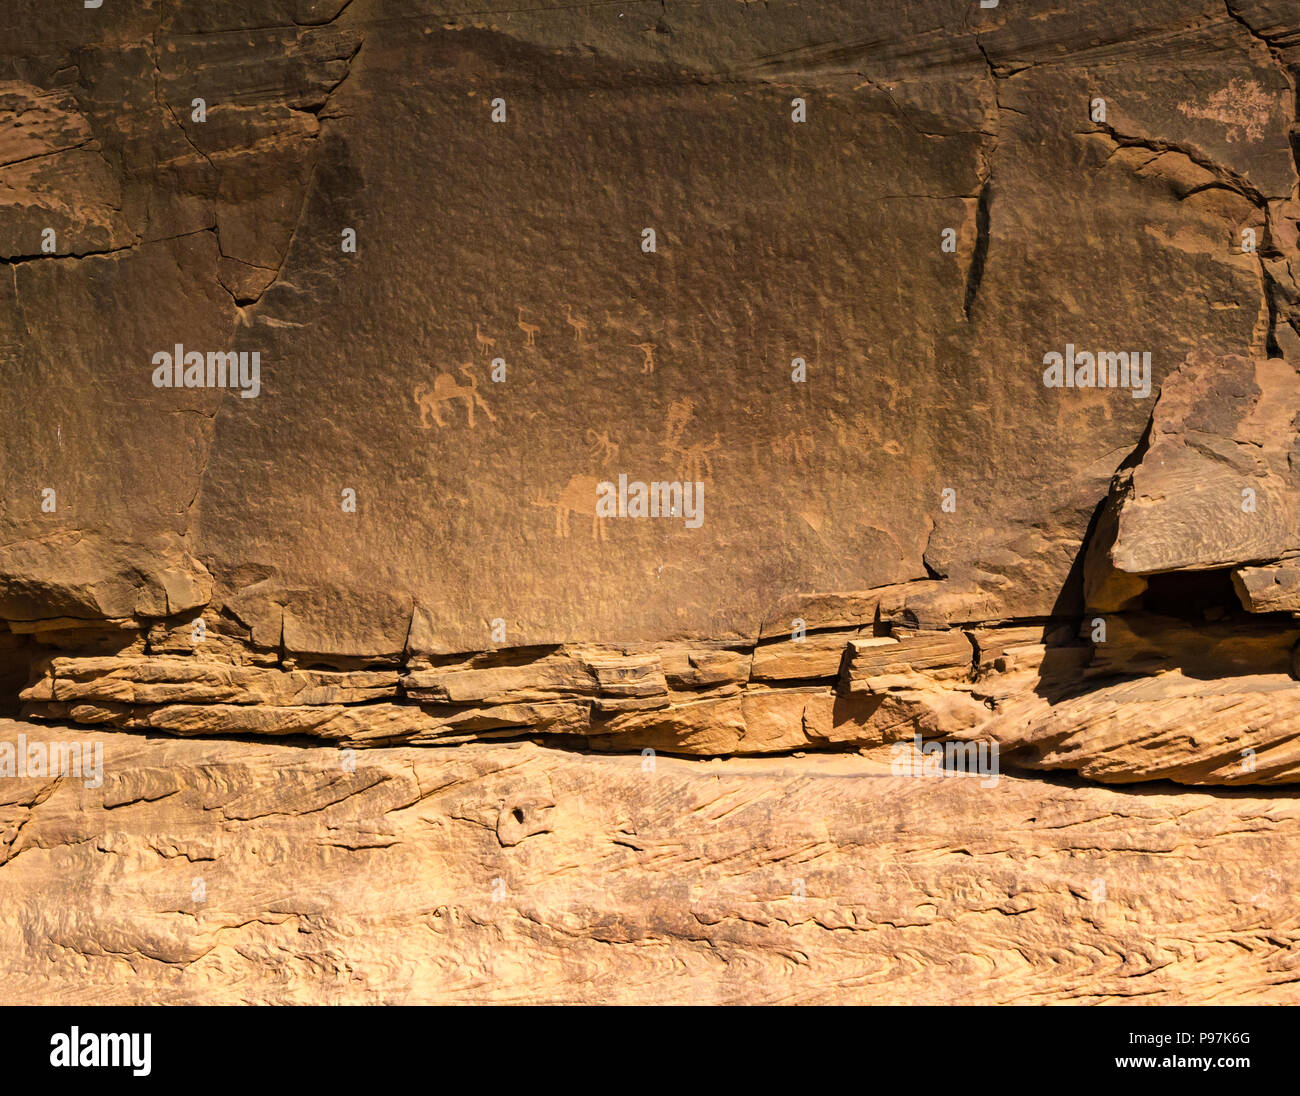 Petroglyph rock carvings of camel and birds Wadi Rum desert valley, Jordan, Middle East - Stock Image